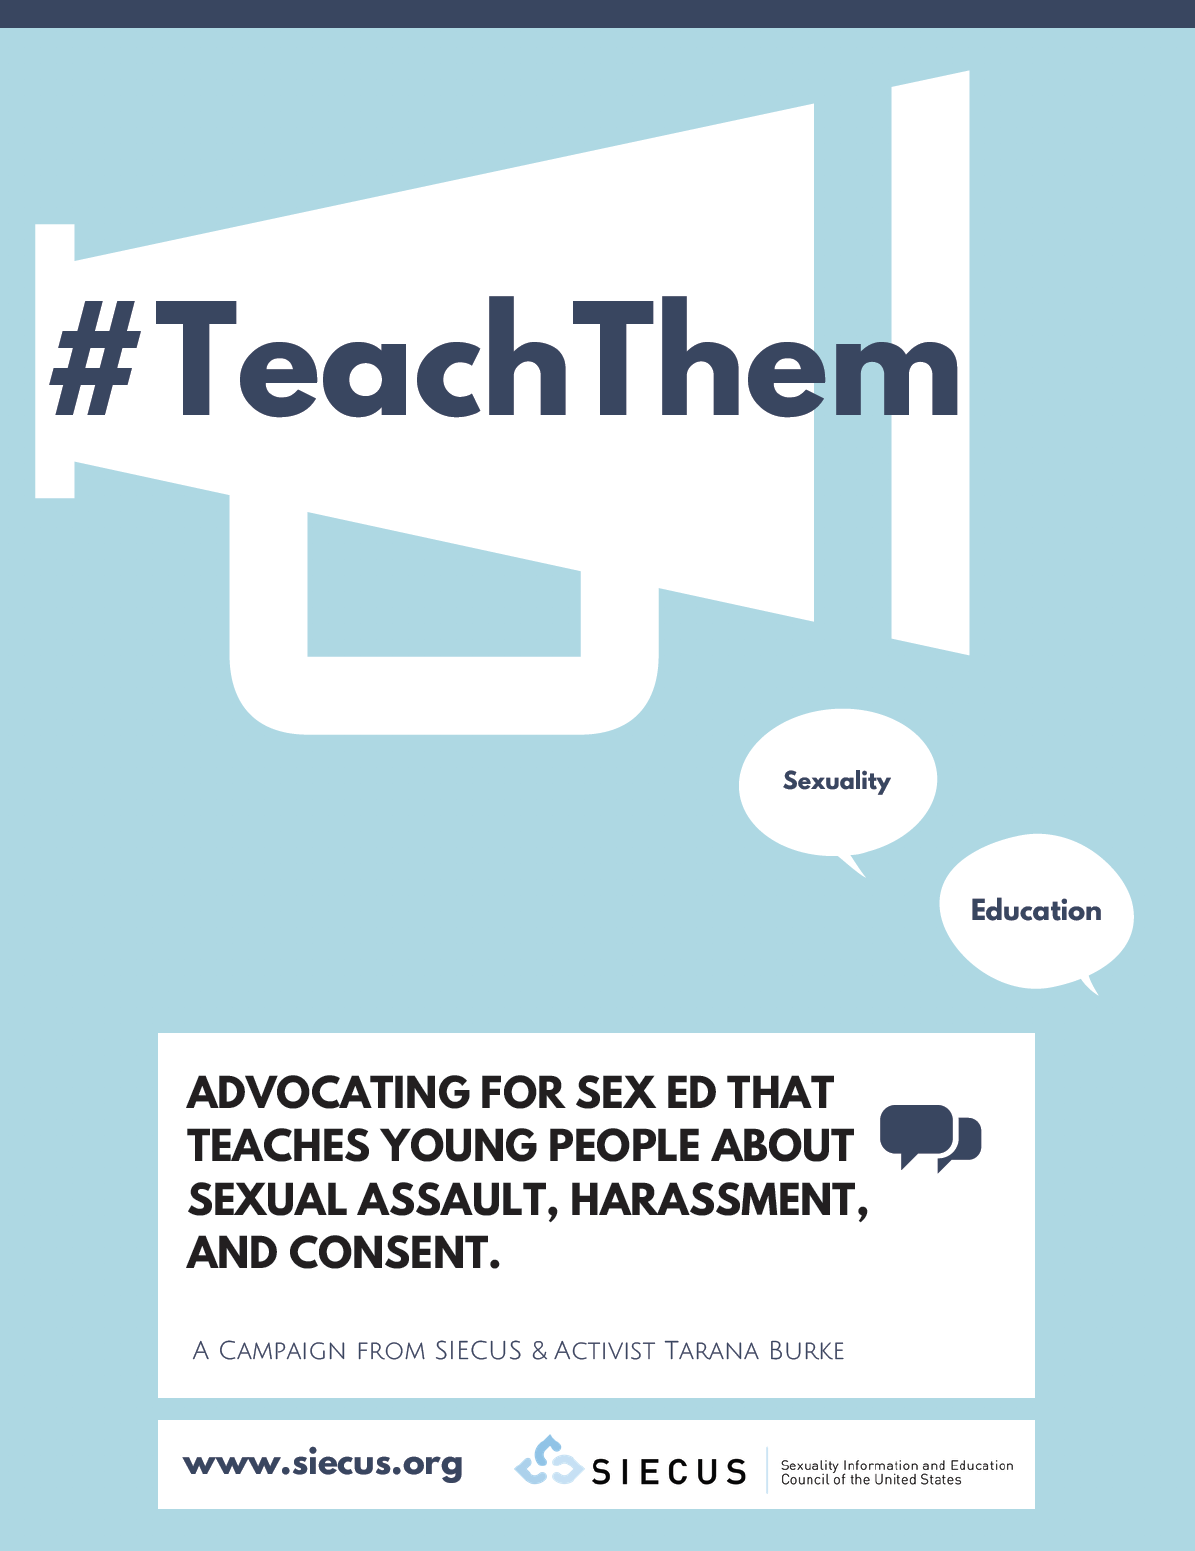 Supporting K-12 Schools to #TeachThem in a Time of #MeToo — Cairn Guidance